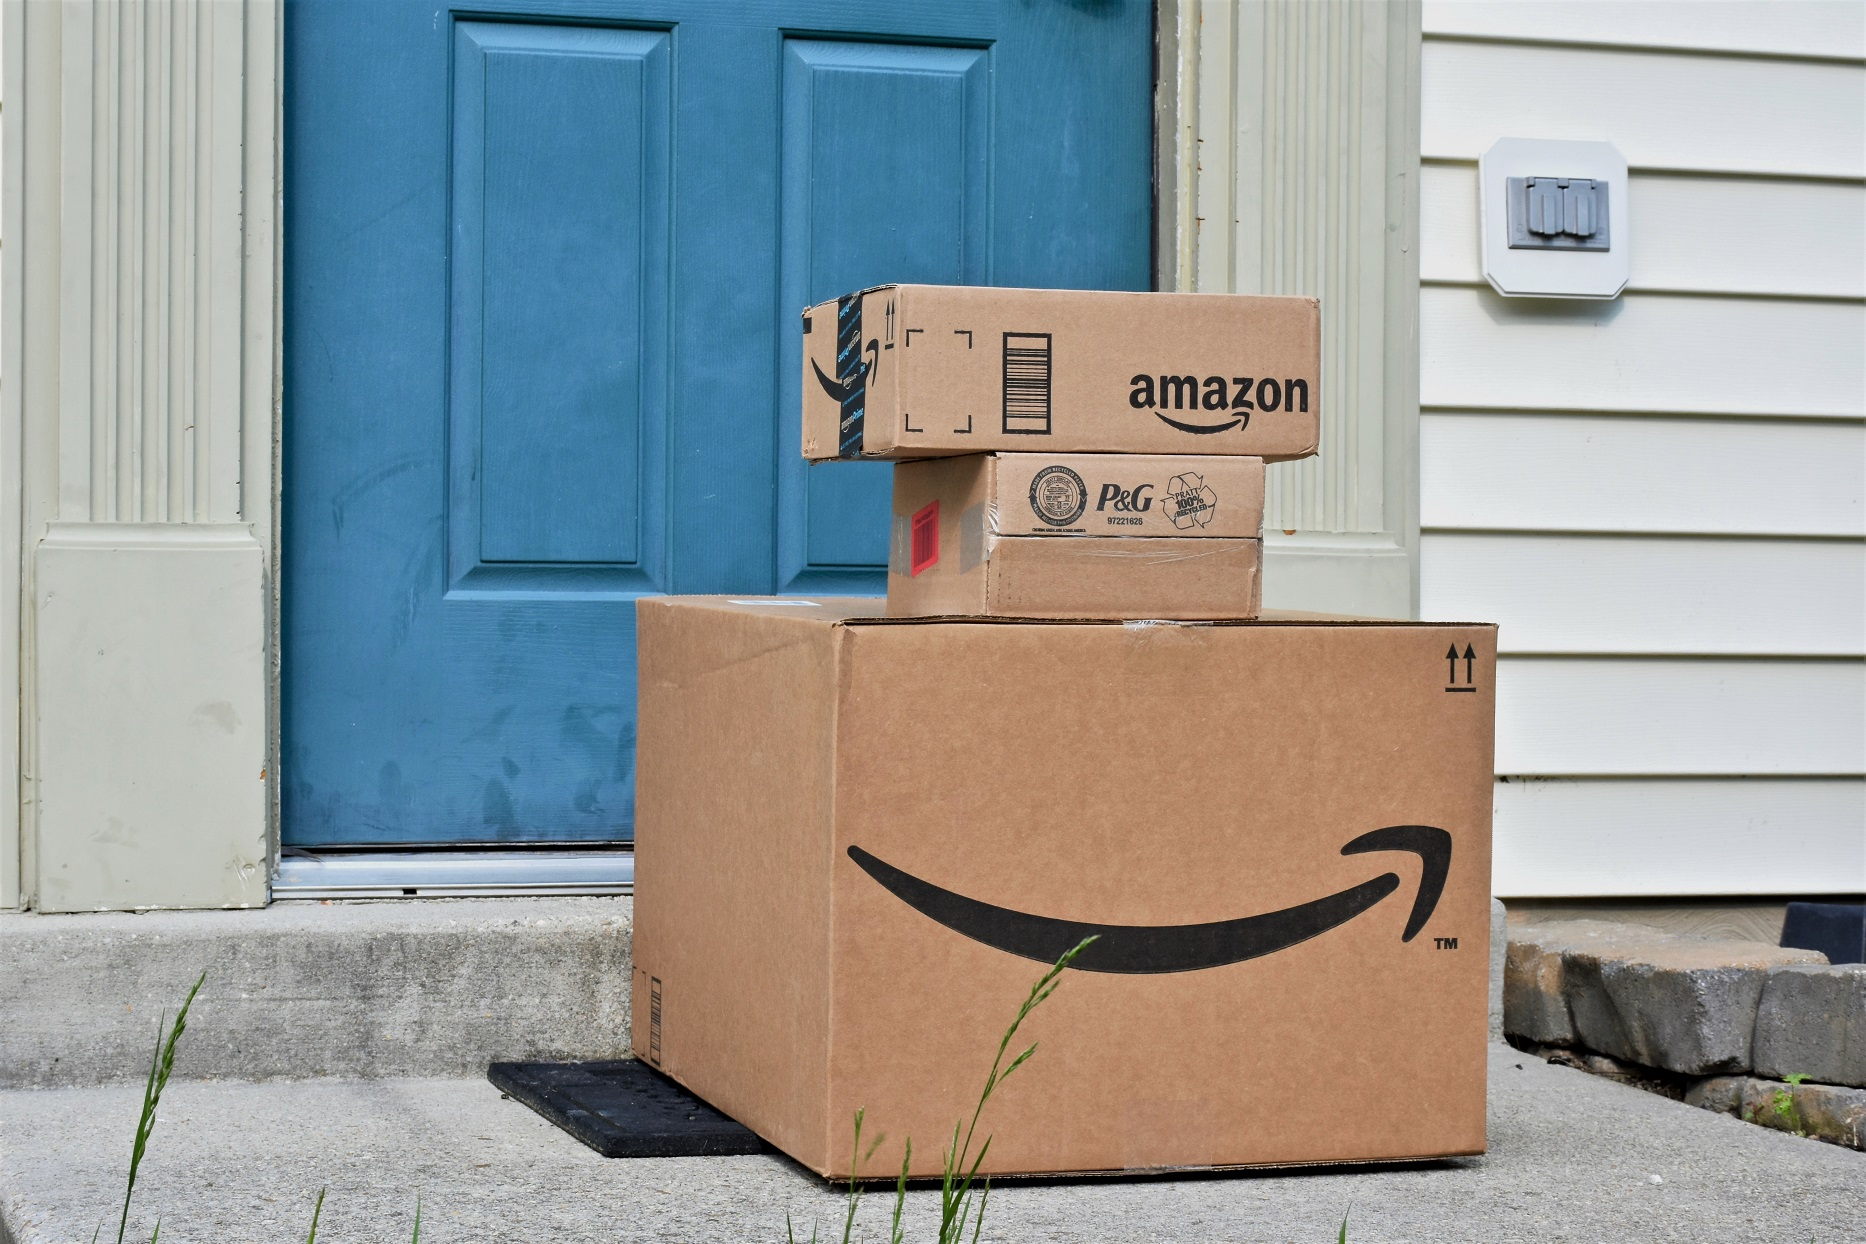 Amazon Prime Boxes on Front Door Step